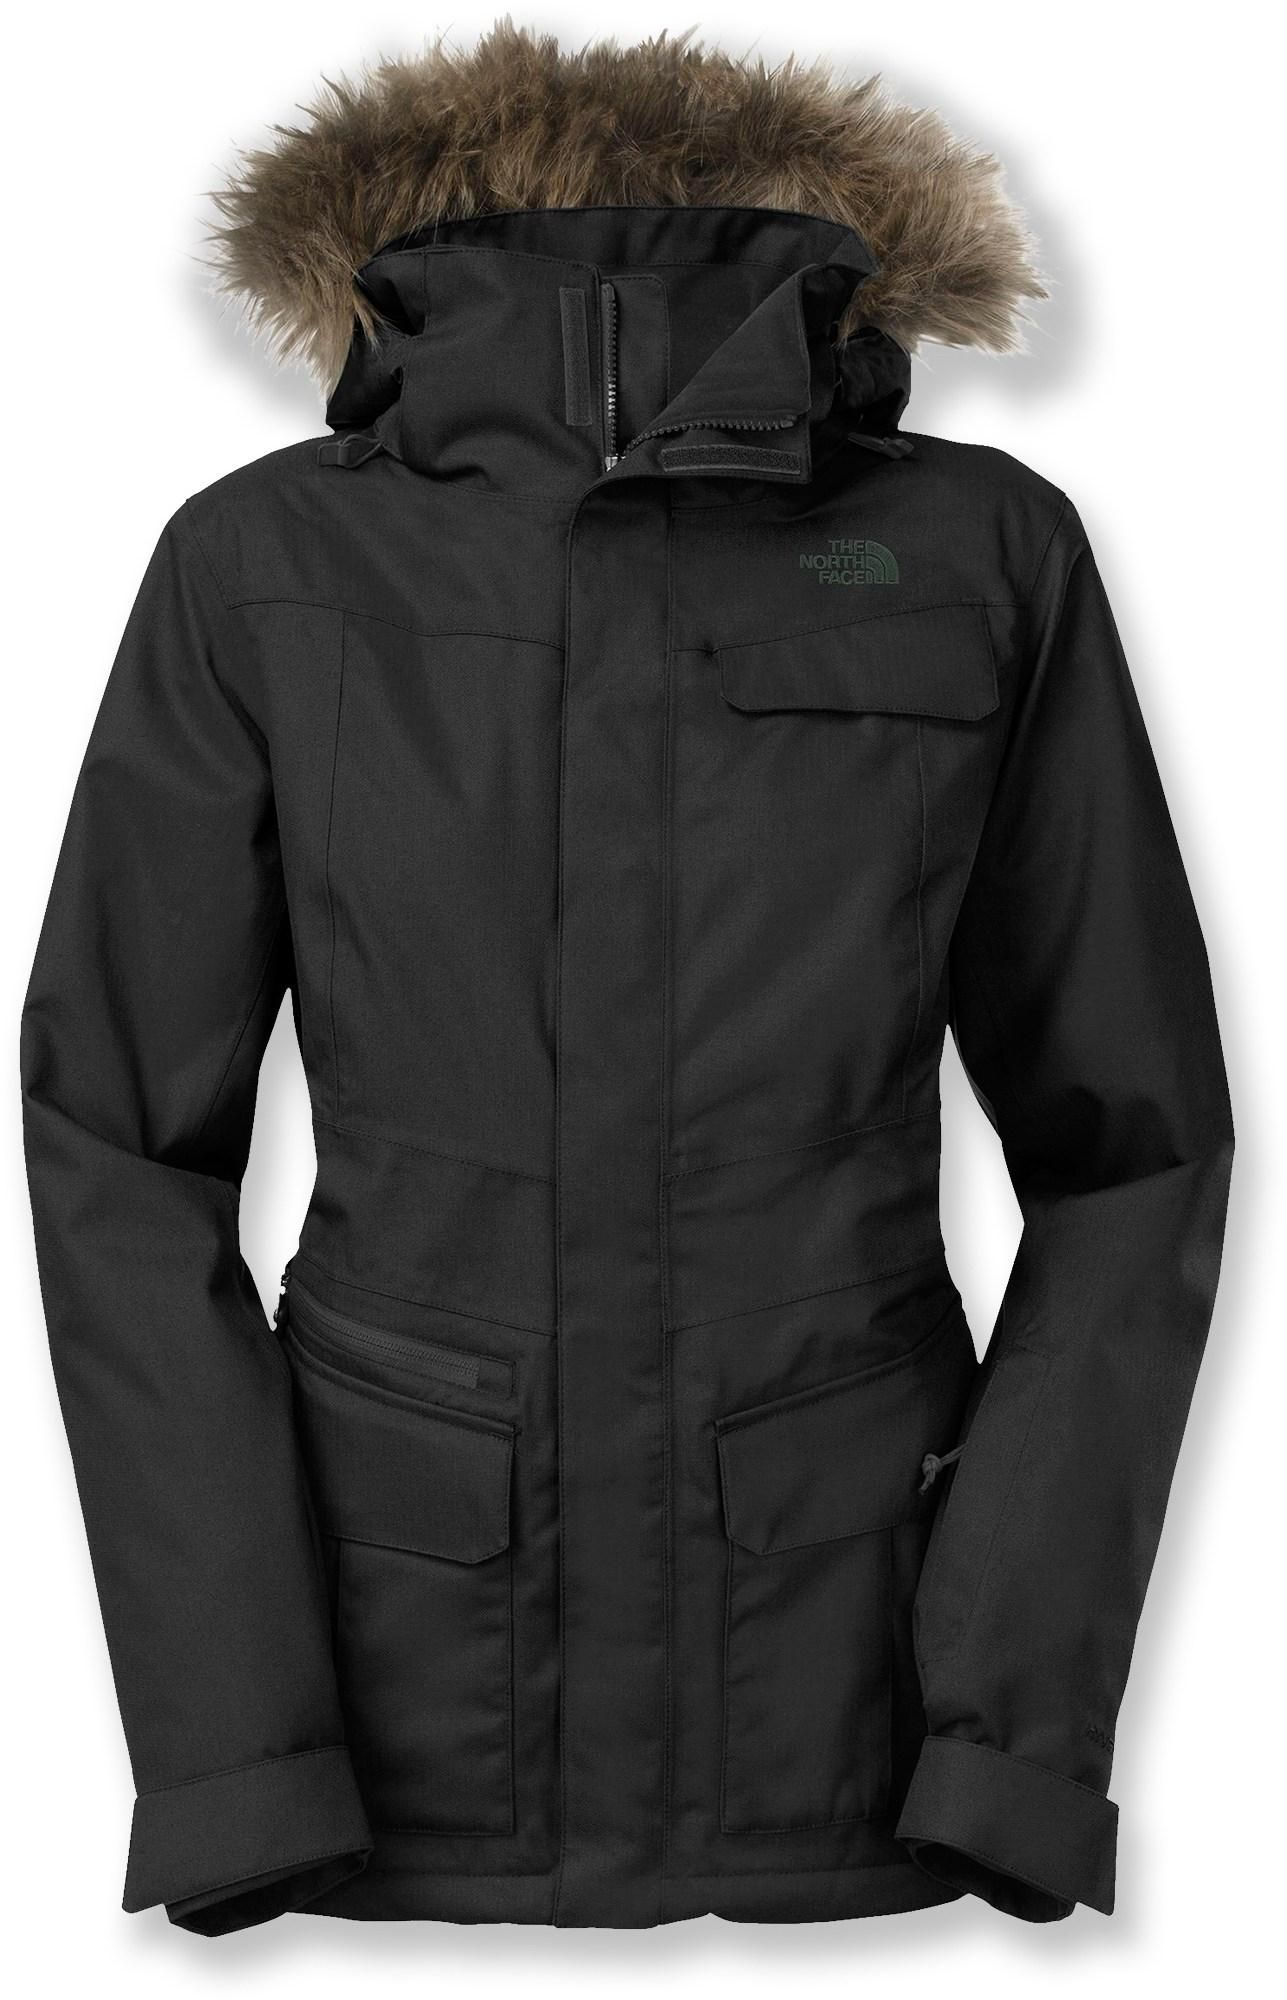 958378d3b8 Love this cut and fit! The North Face Baker Delux Insulated Jacket ...